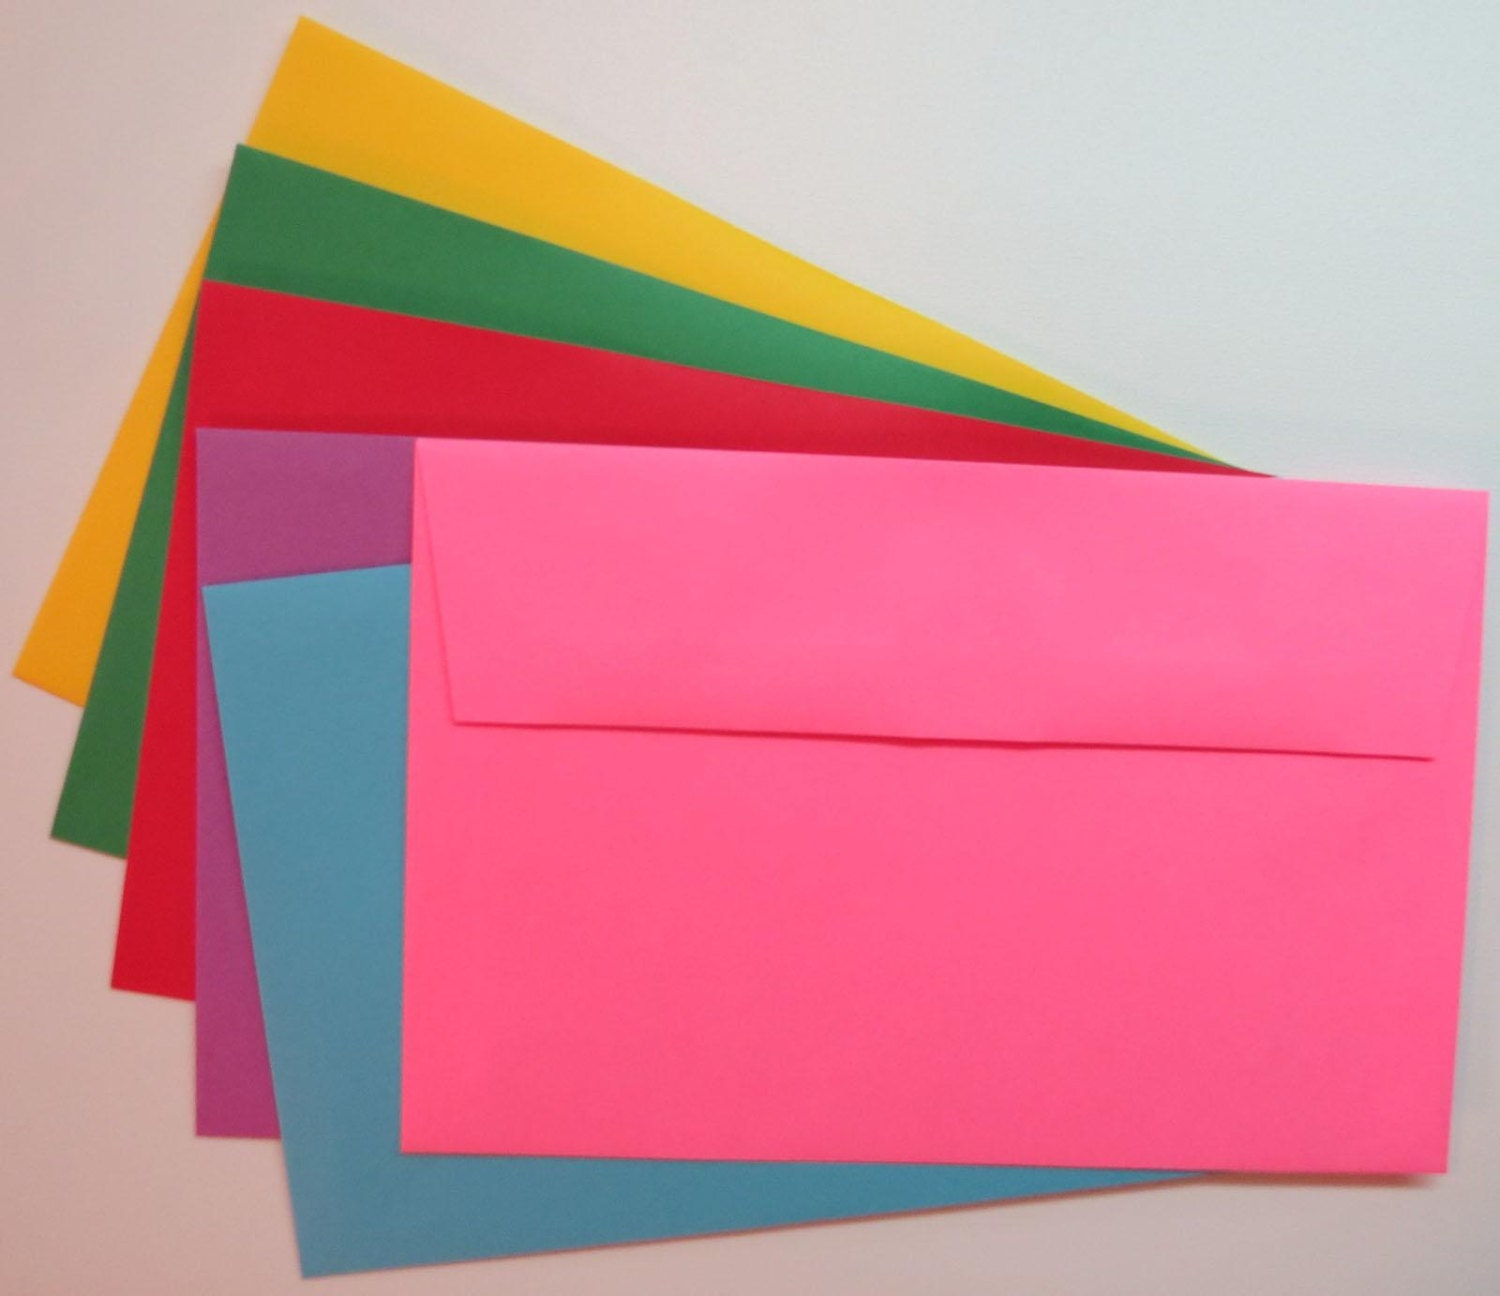 pe60 25pk  a9 60 lb color envelopes 8 3  4 x 5 3  4  22 23cm x 14 61cm  from clearbagsrus on etsy